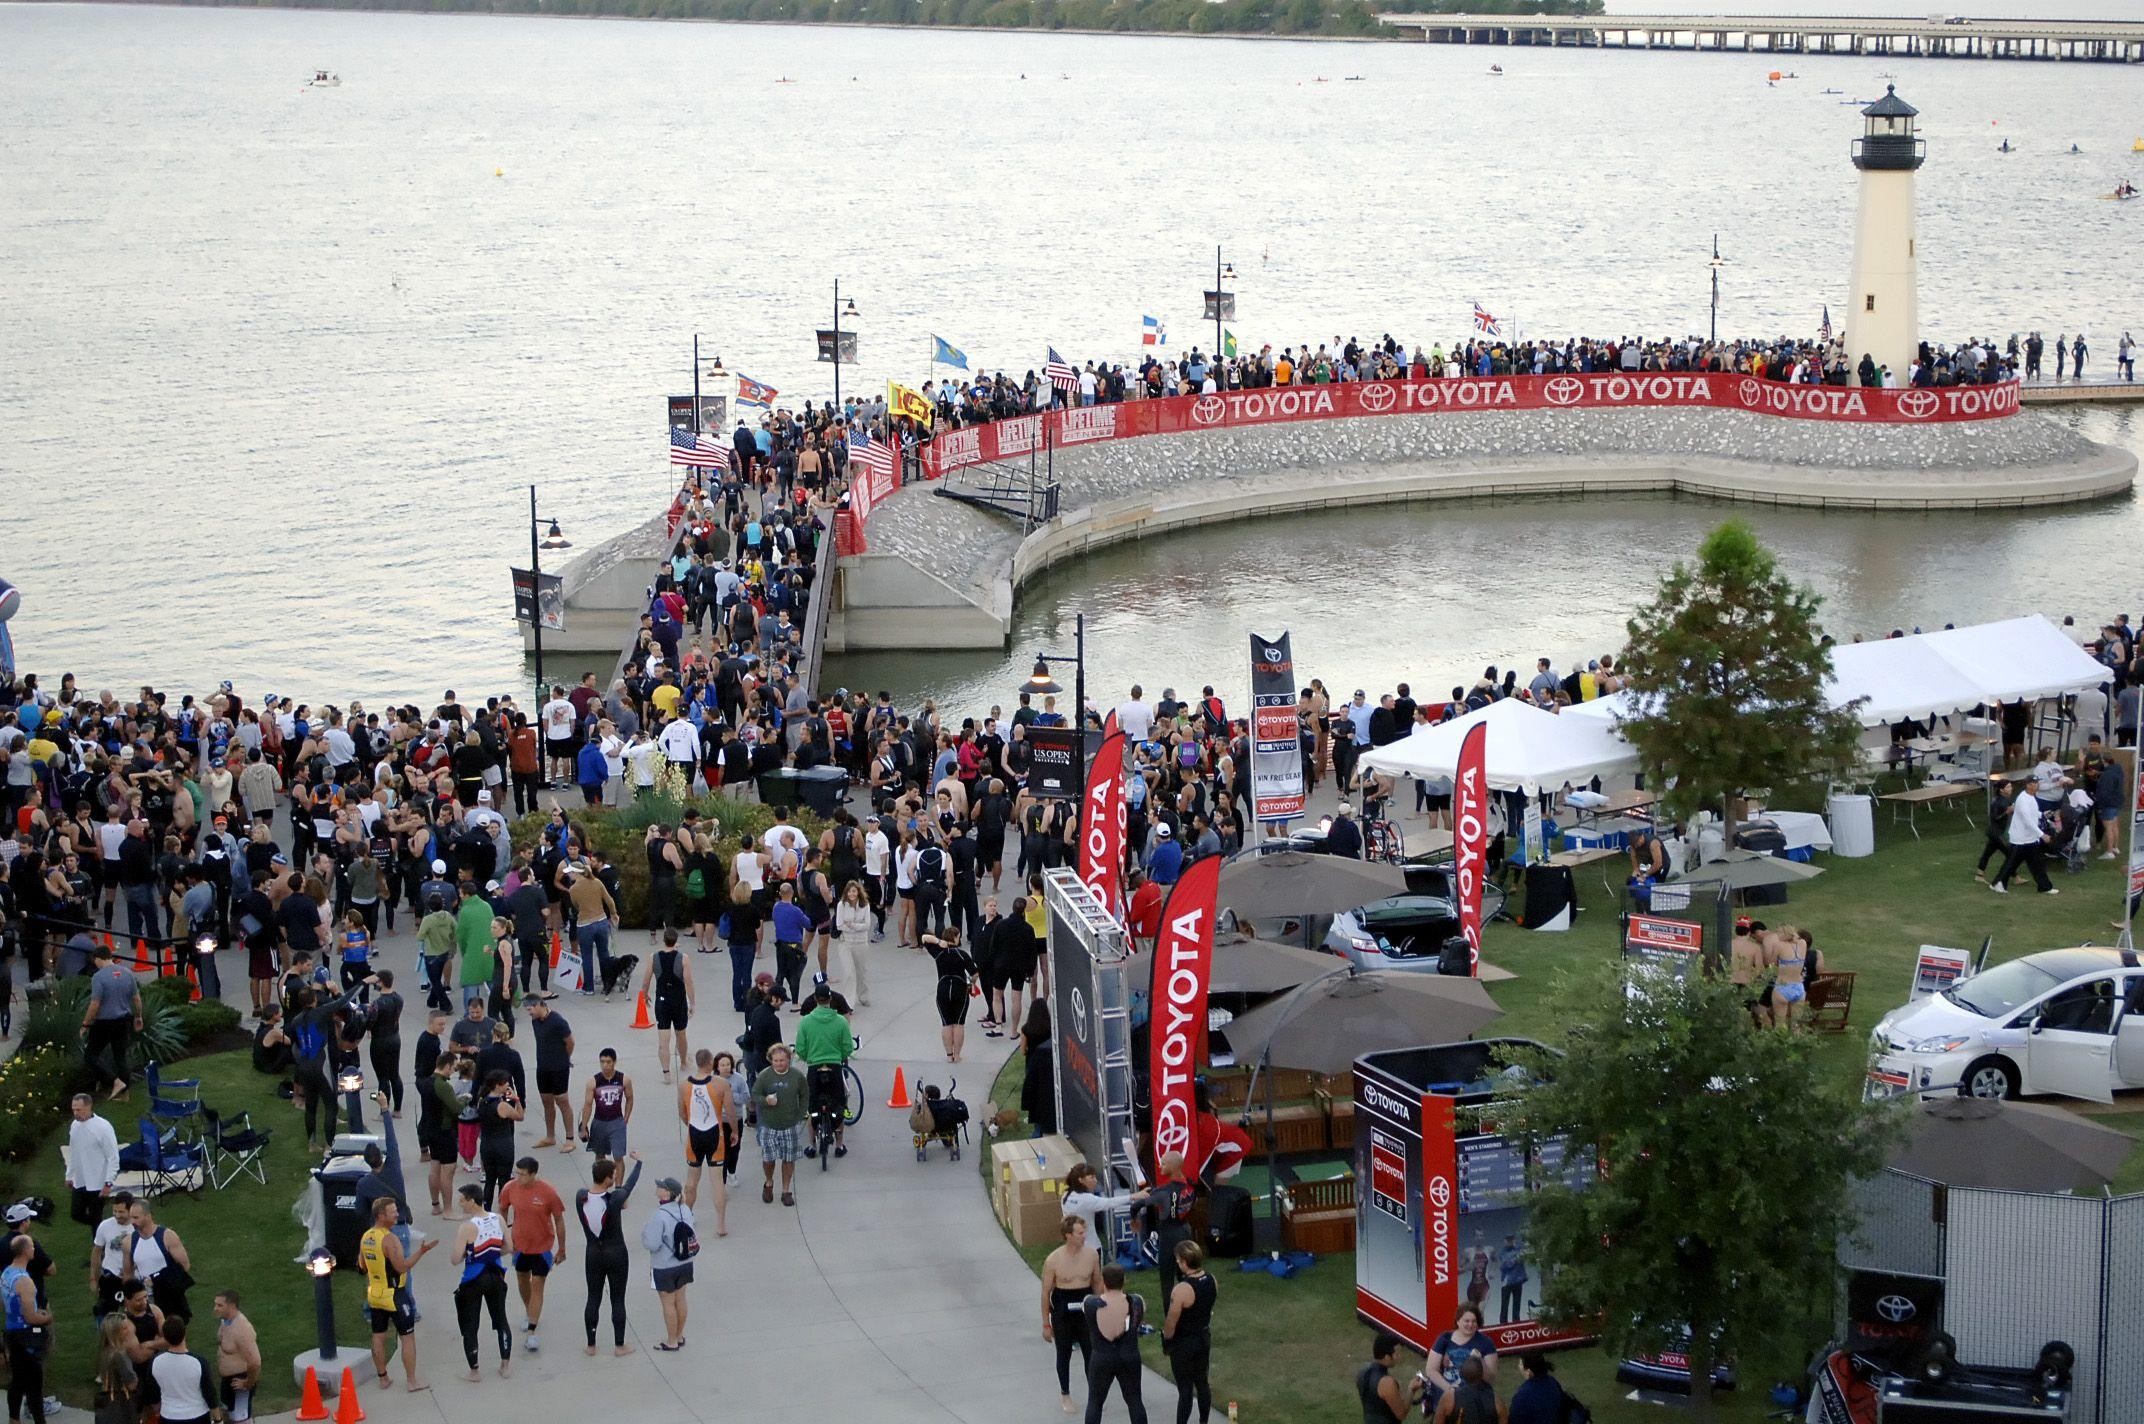 Toyota Of Rockwall >> Toyota US Open Triathlon to draw thousands to Harbor | Blue Ribbon News